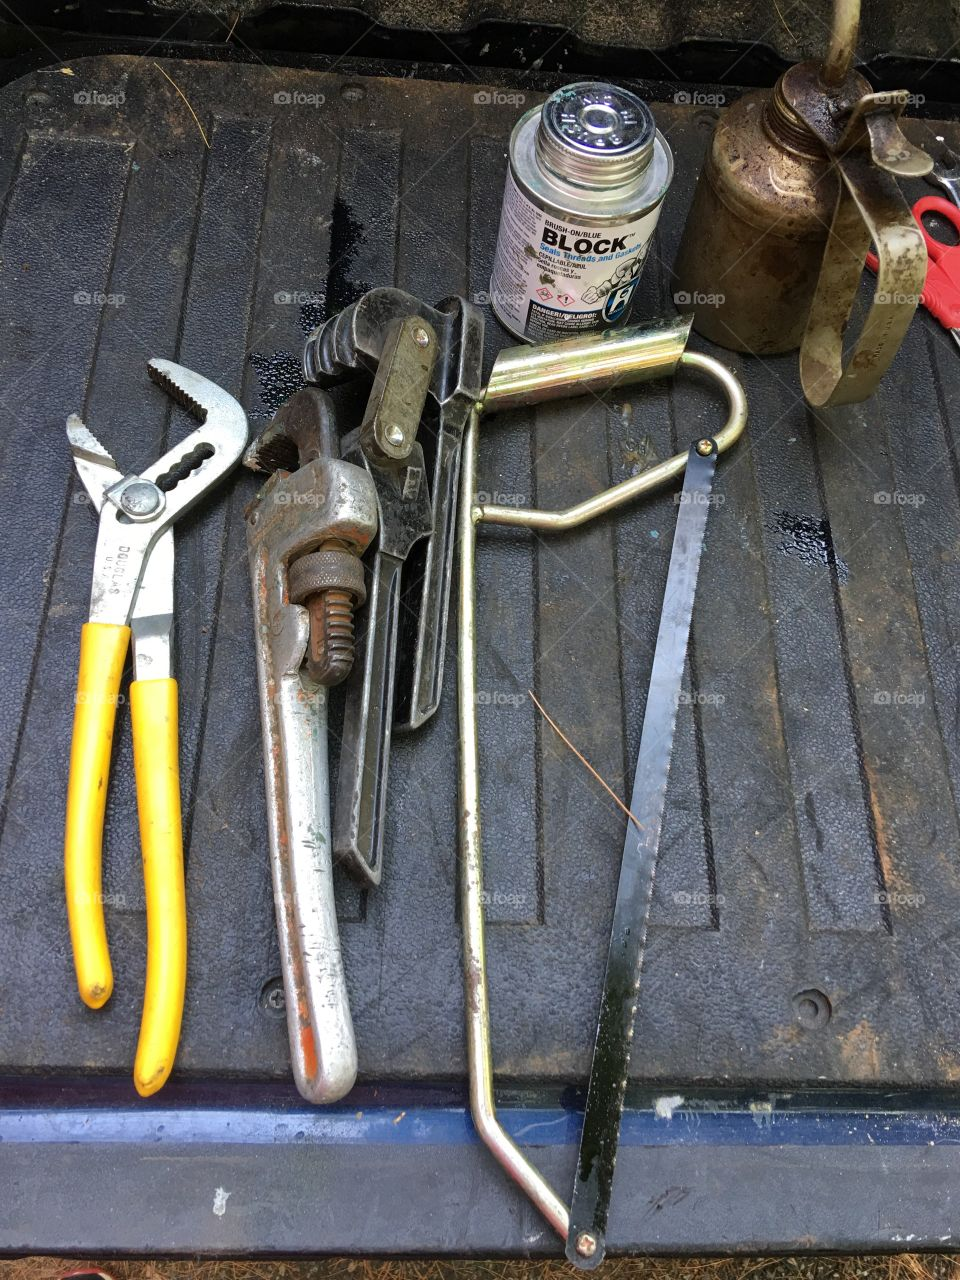 Layout of plumbers tools. Wrenches, solder, hand saw, glue pvc pipes, etc.